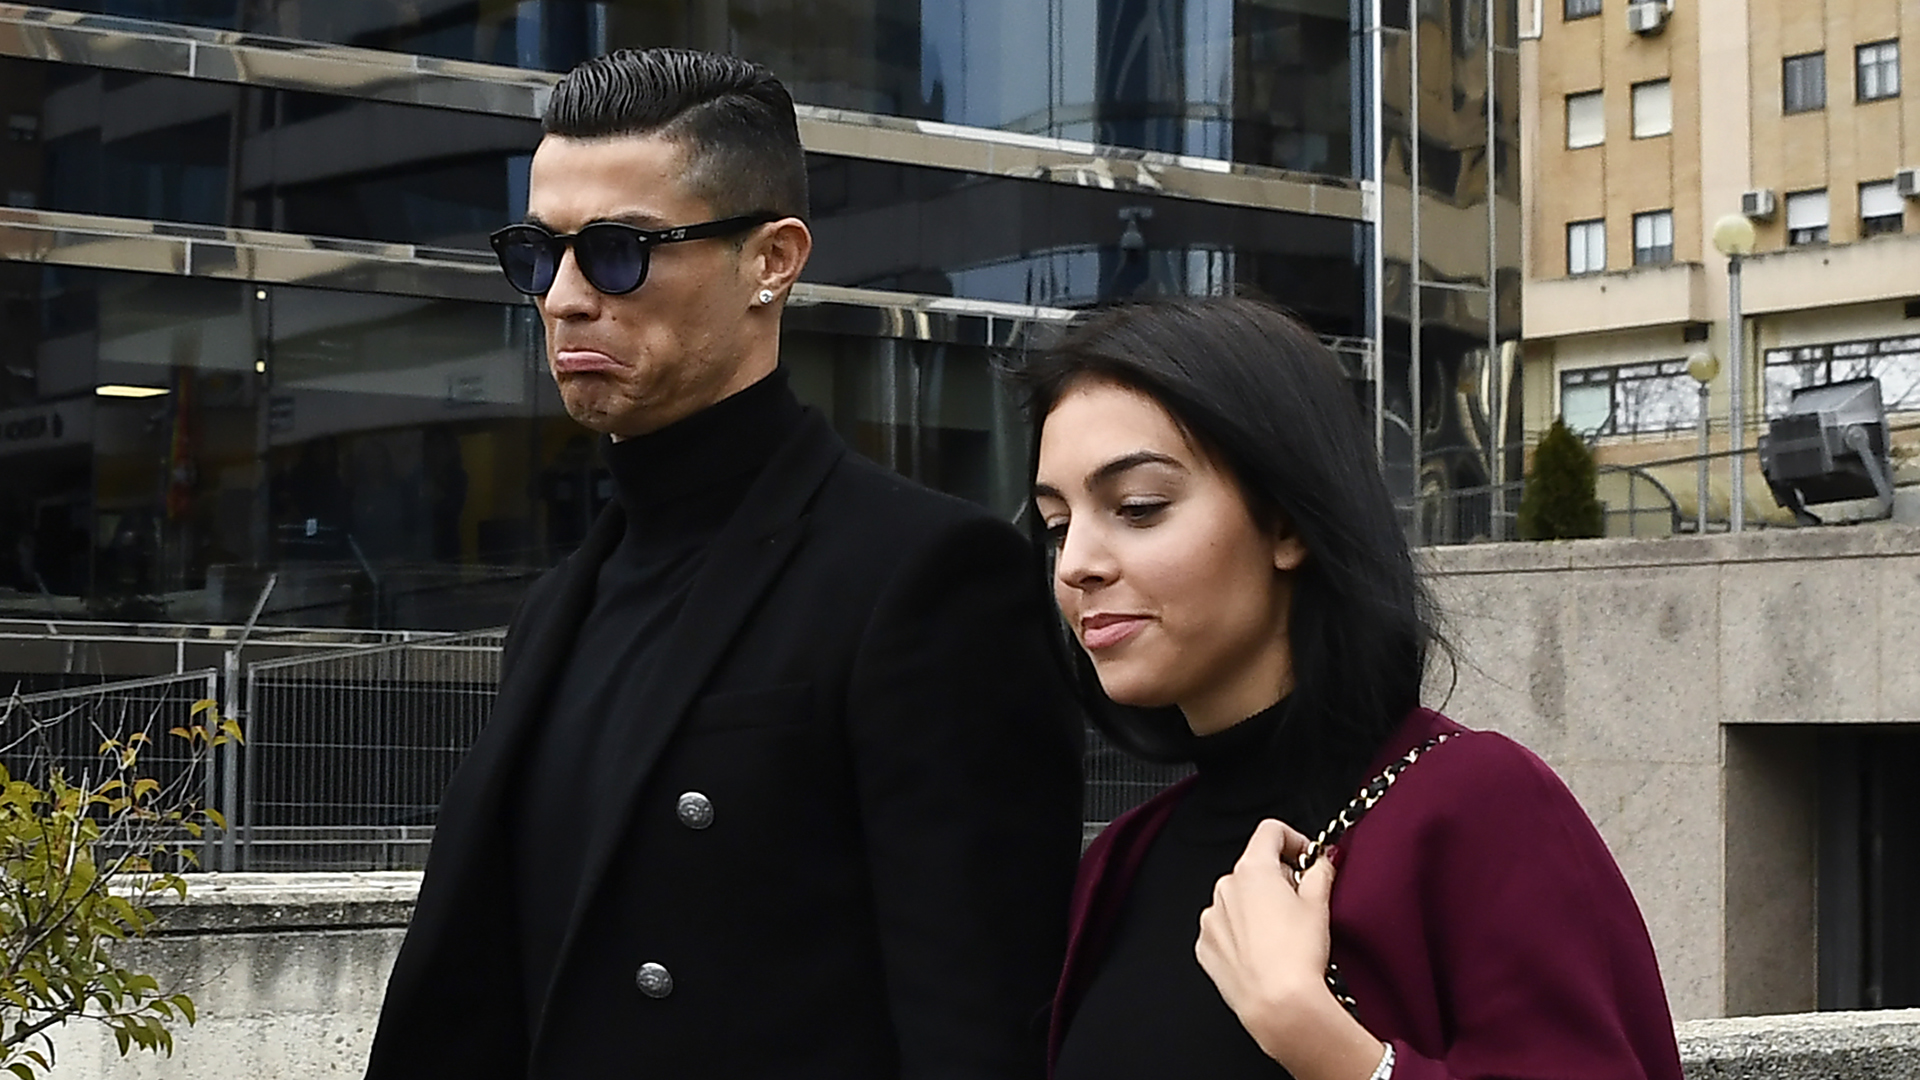 Juventus paid €341m for Ronaldo for Champions League success, now it's time to deliver